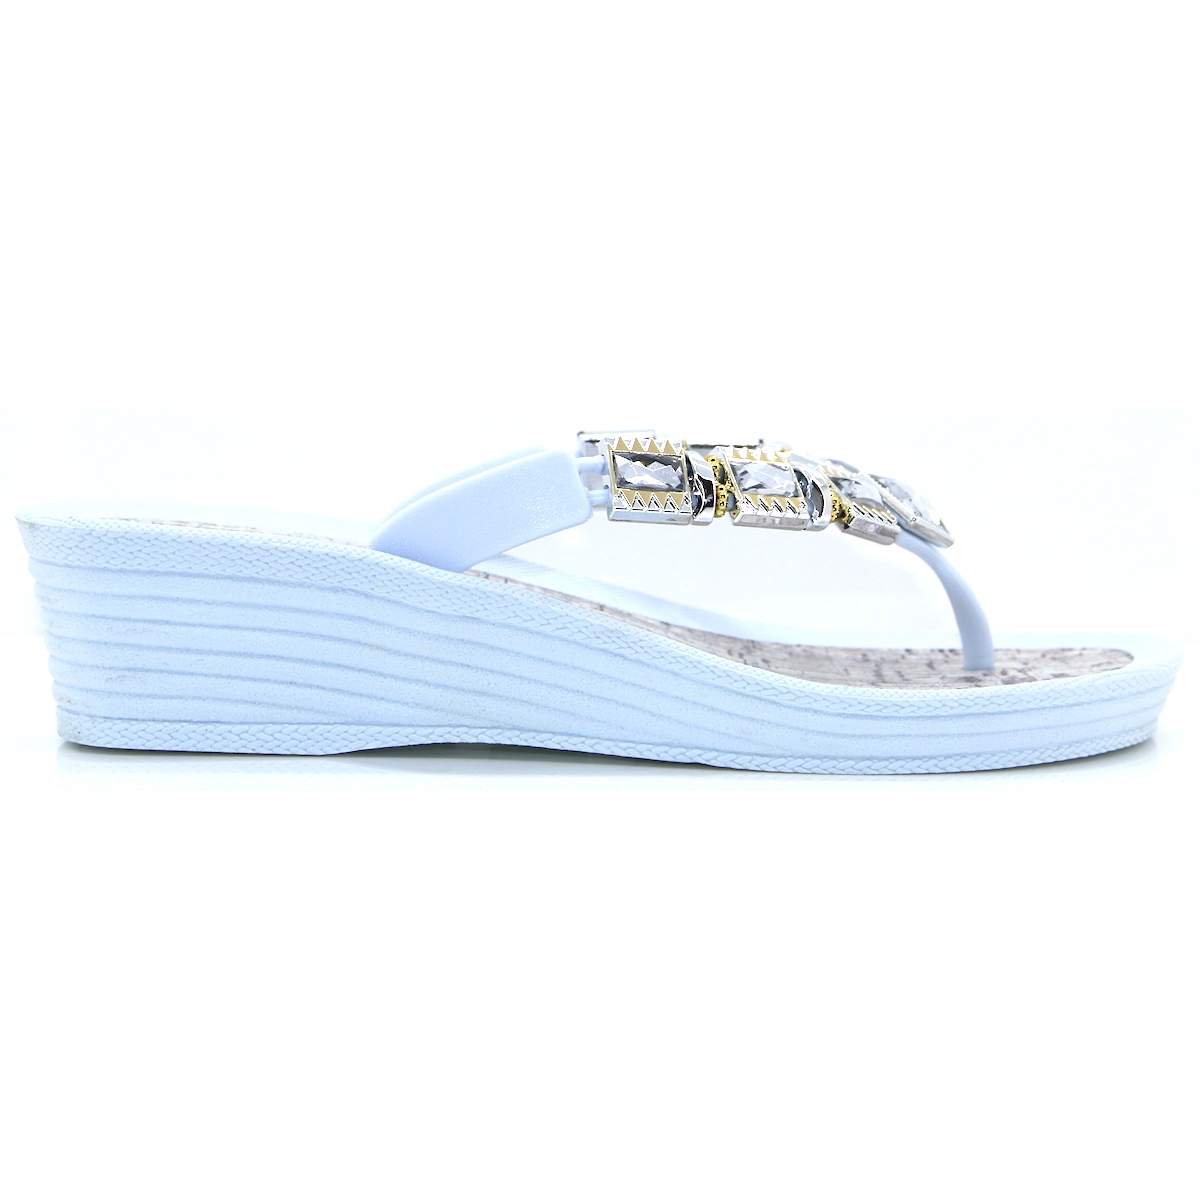 14e0284b0fb8 Inis Shoe - PIA ROSSINI WHITE WEDGE FLIP FLOPS - Panache Shoe Company